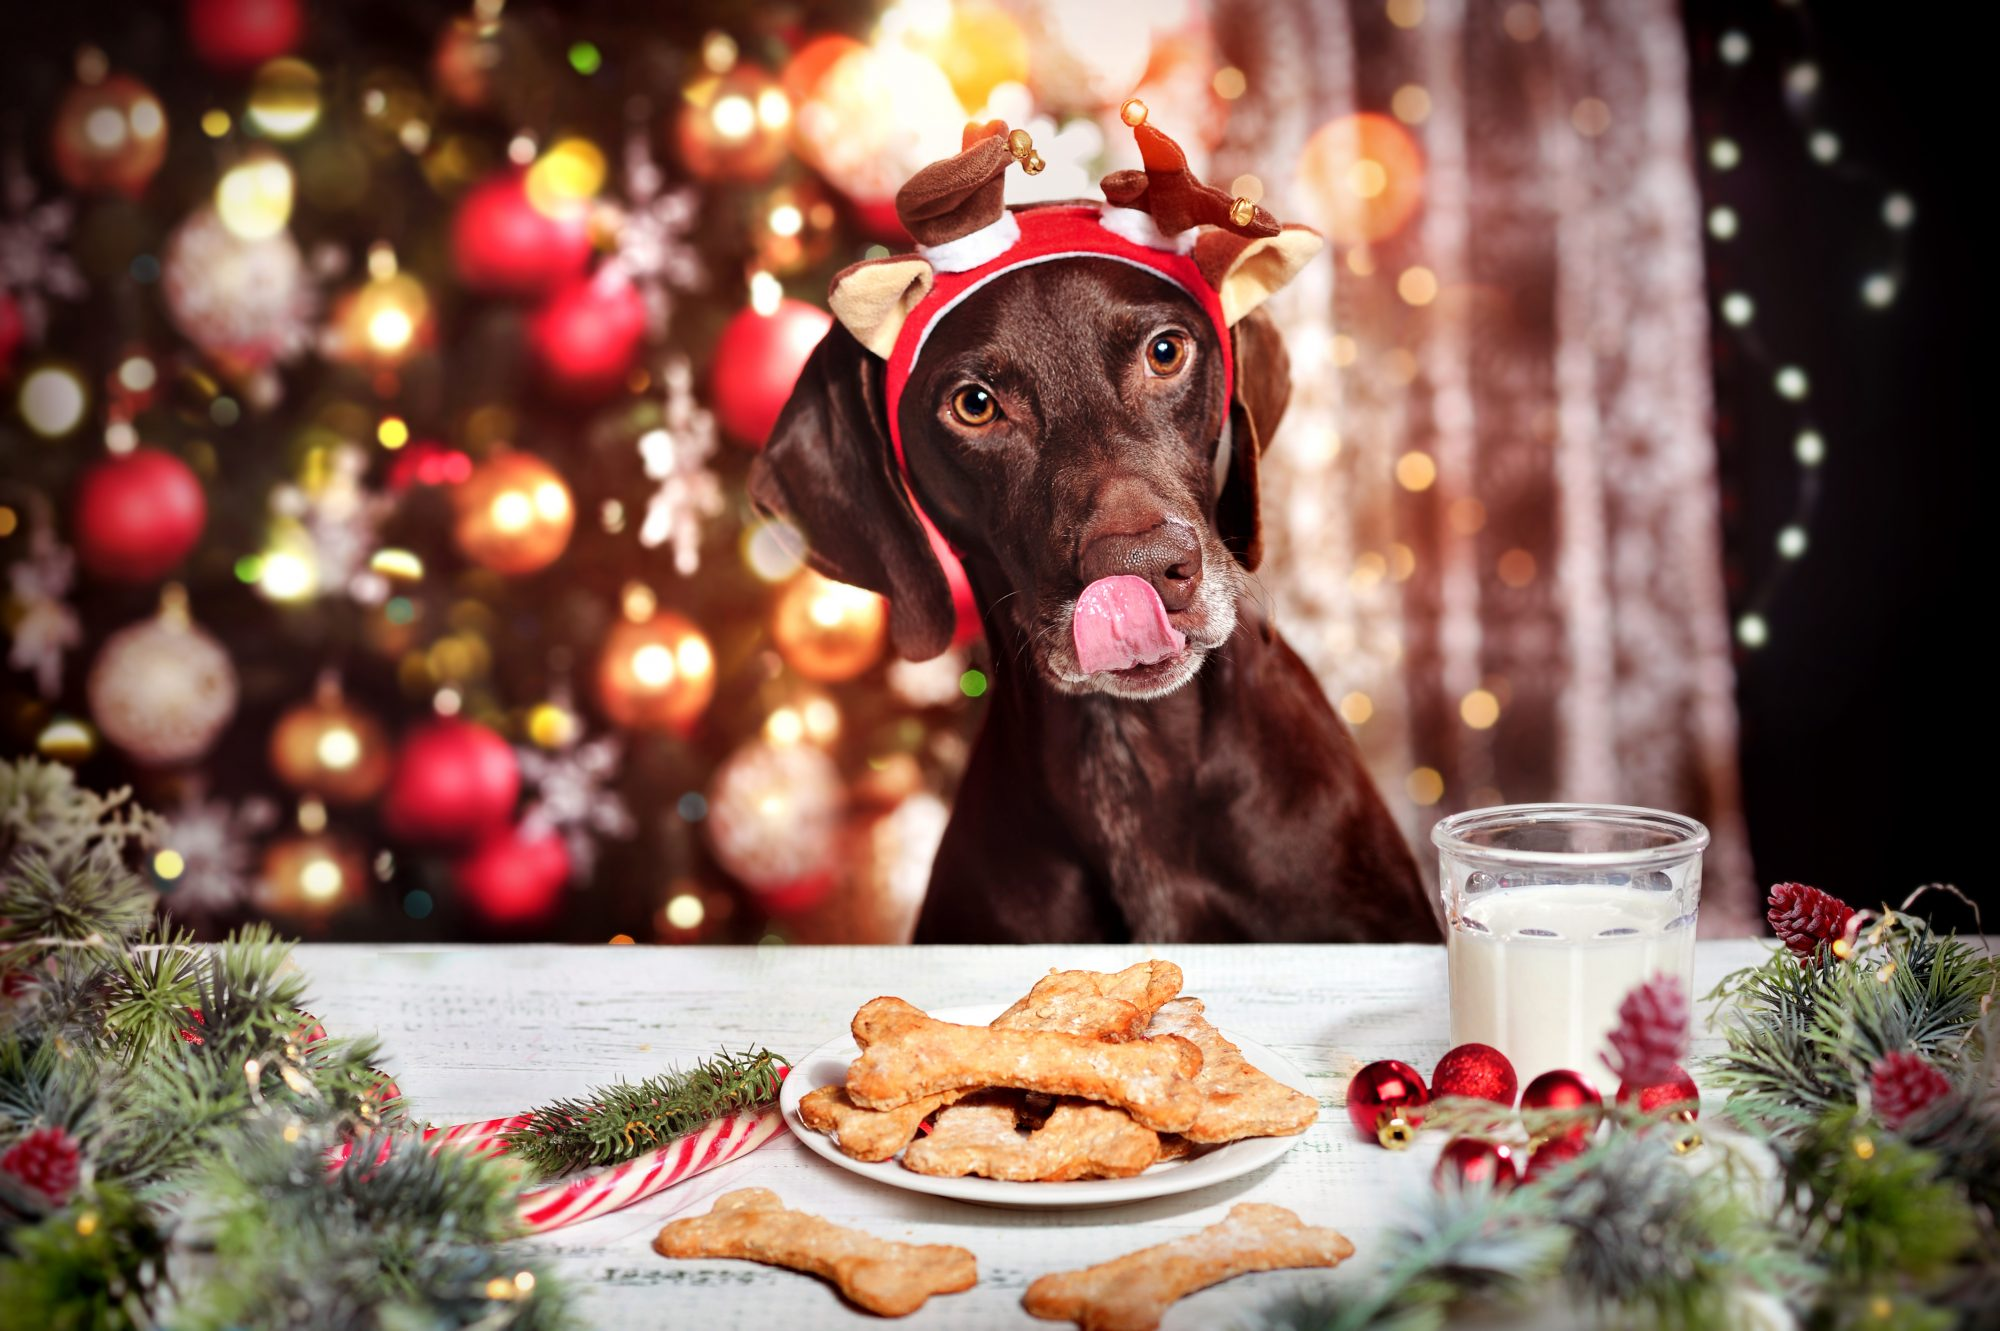 Dog Licking Snout at Christmas Table